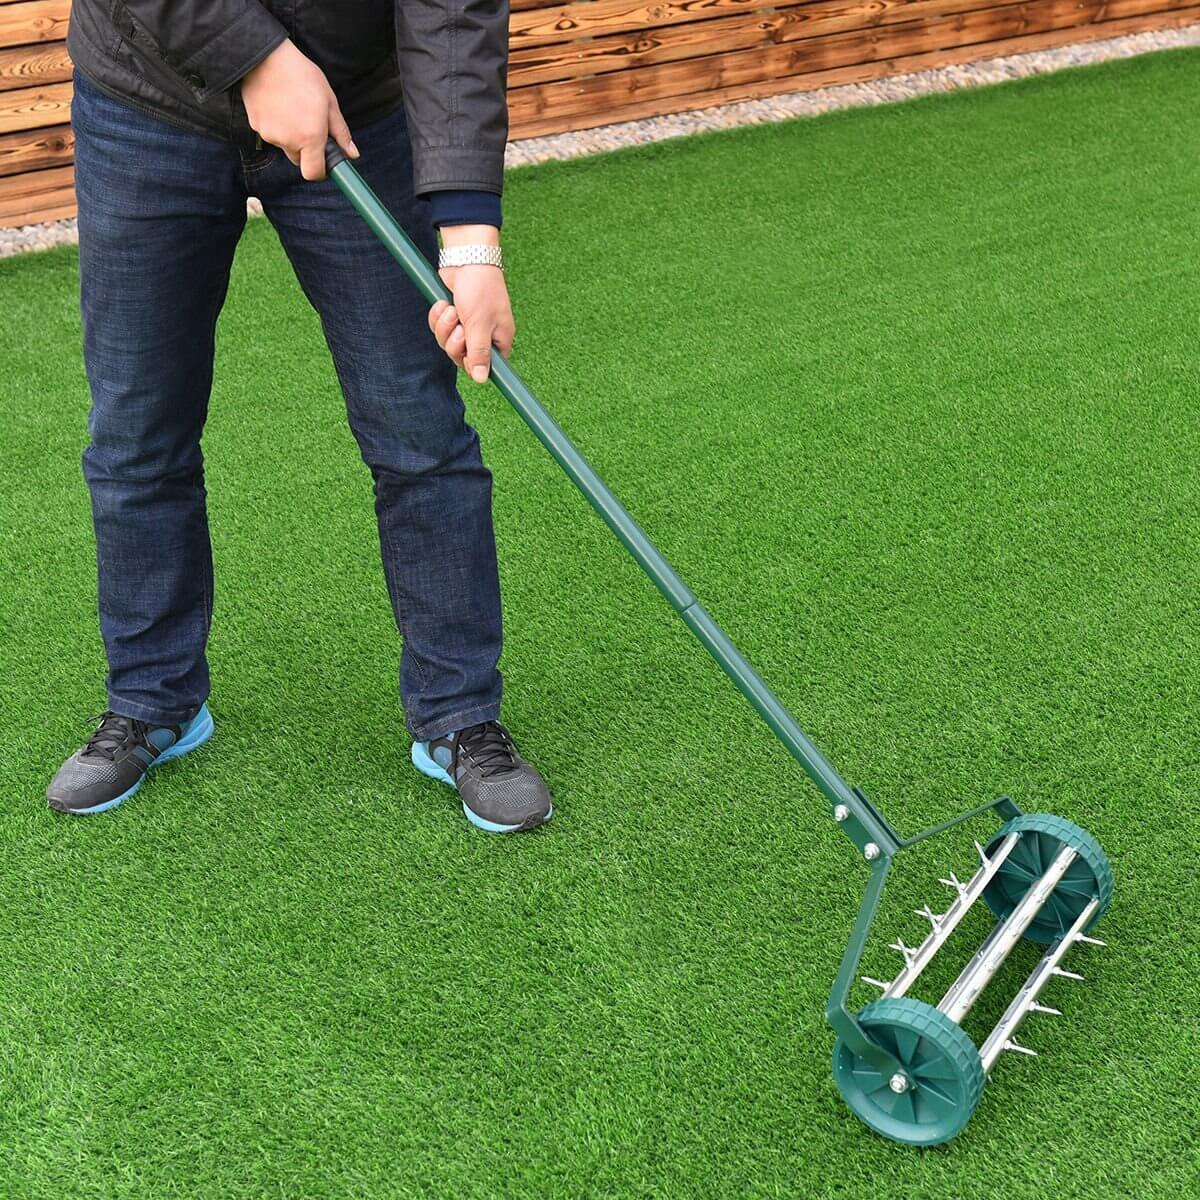 The best way to care for your lawn